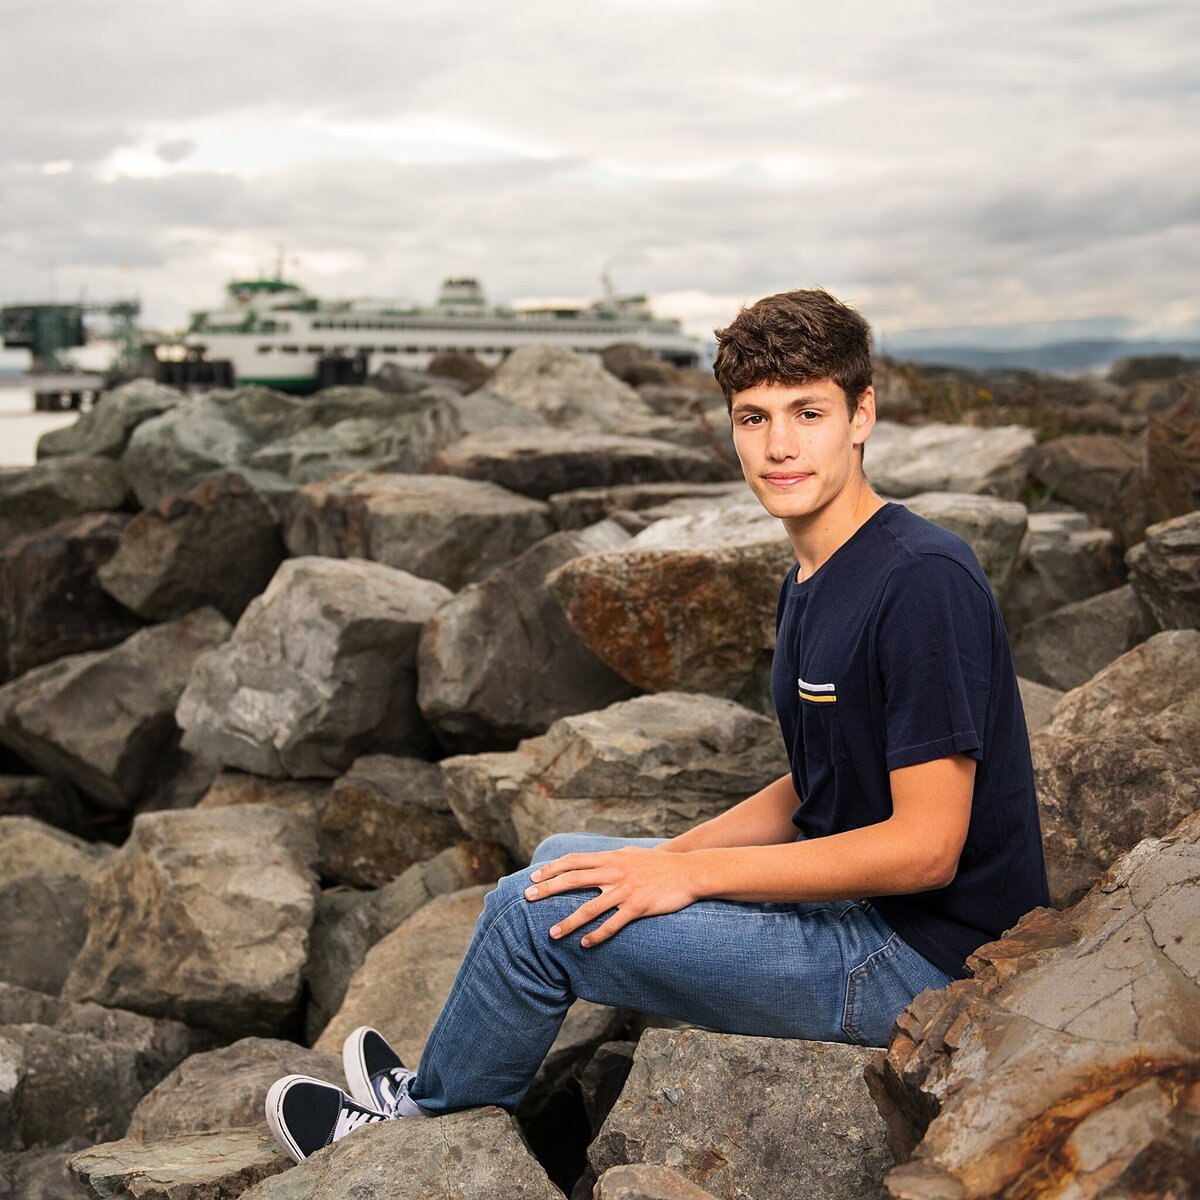 Senior Portrait Photographer Ellensburg Washington